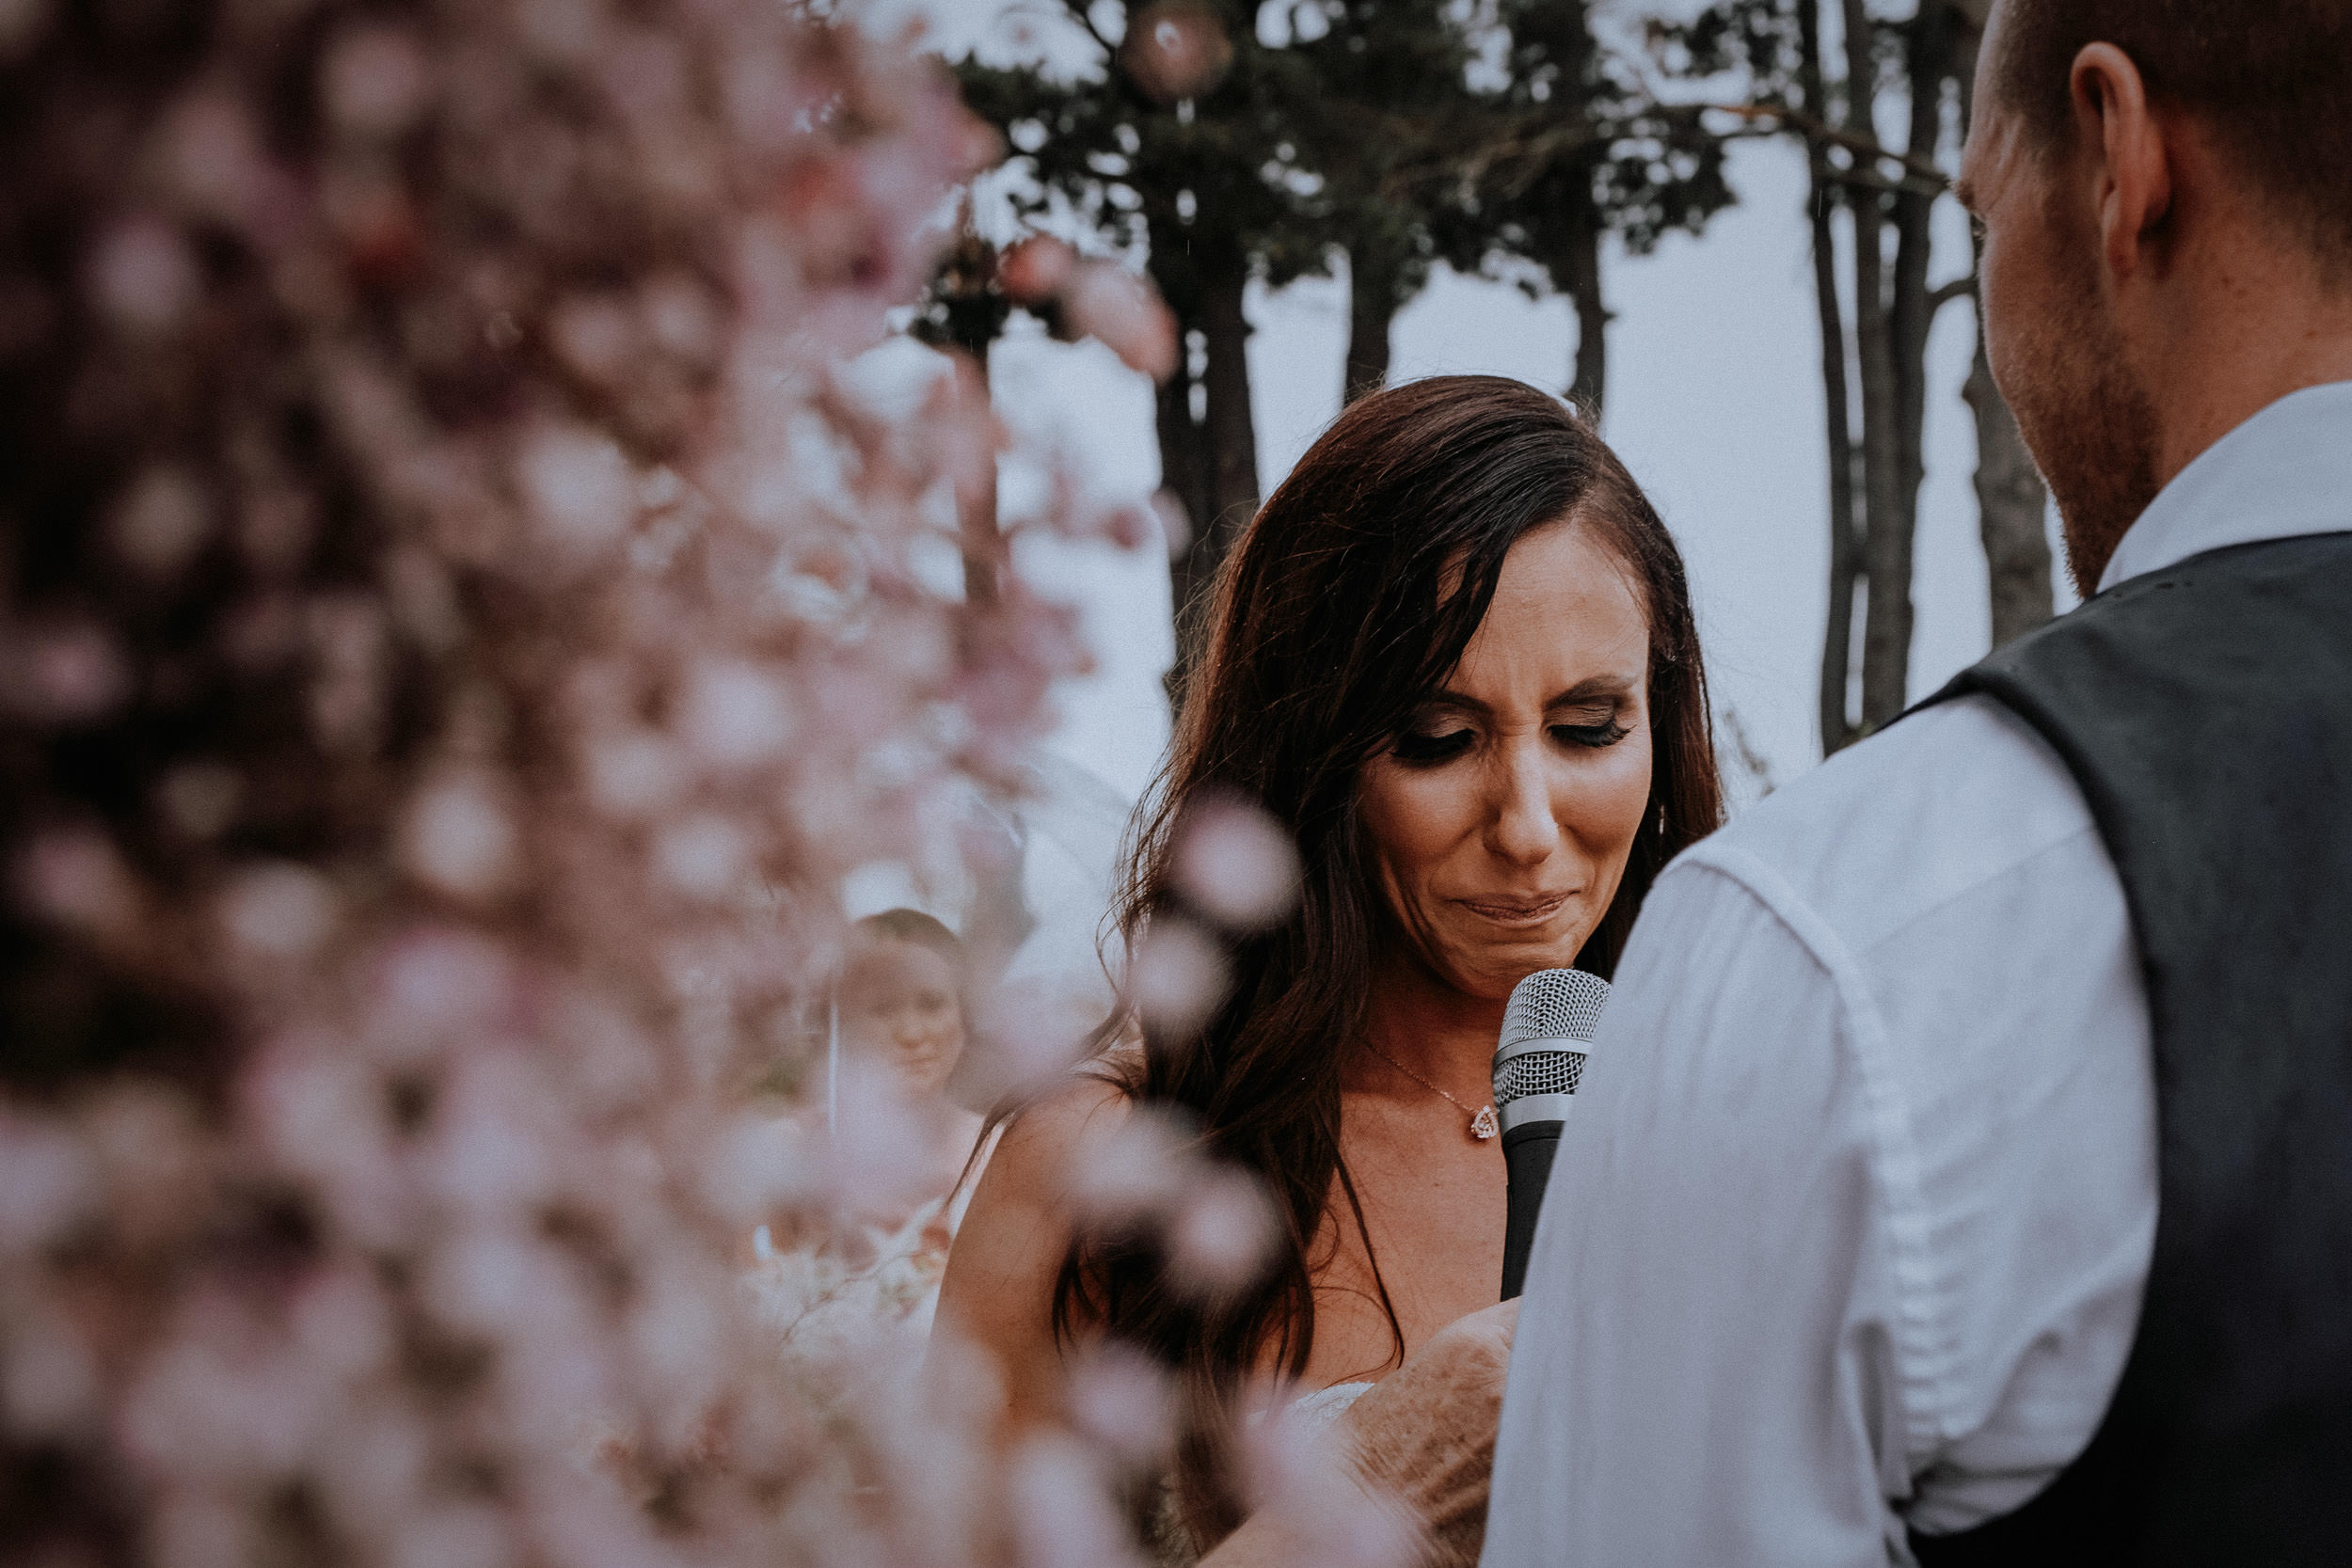 An emotional bride giving her vows to her groom during their wedding ceremony